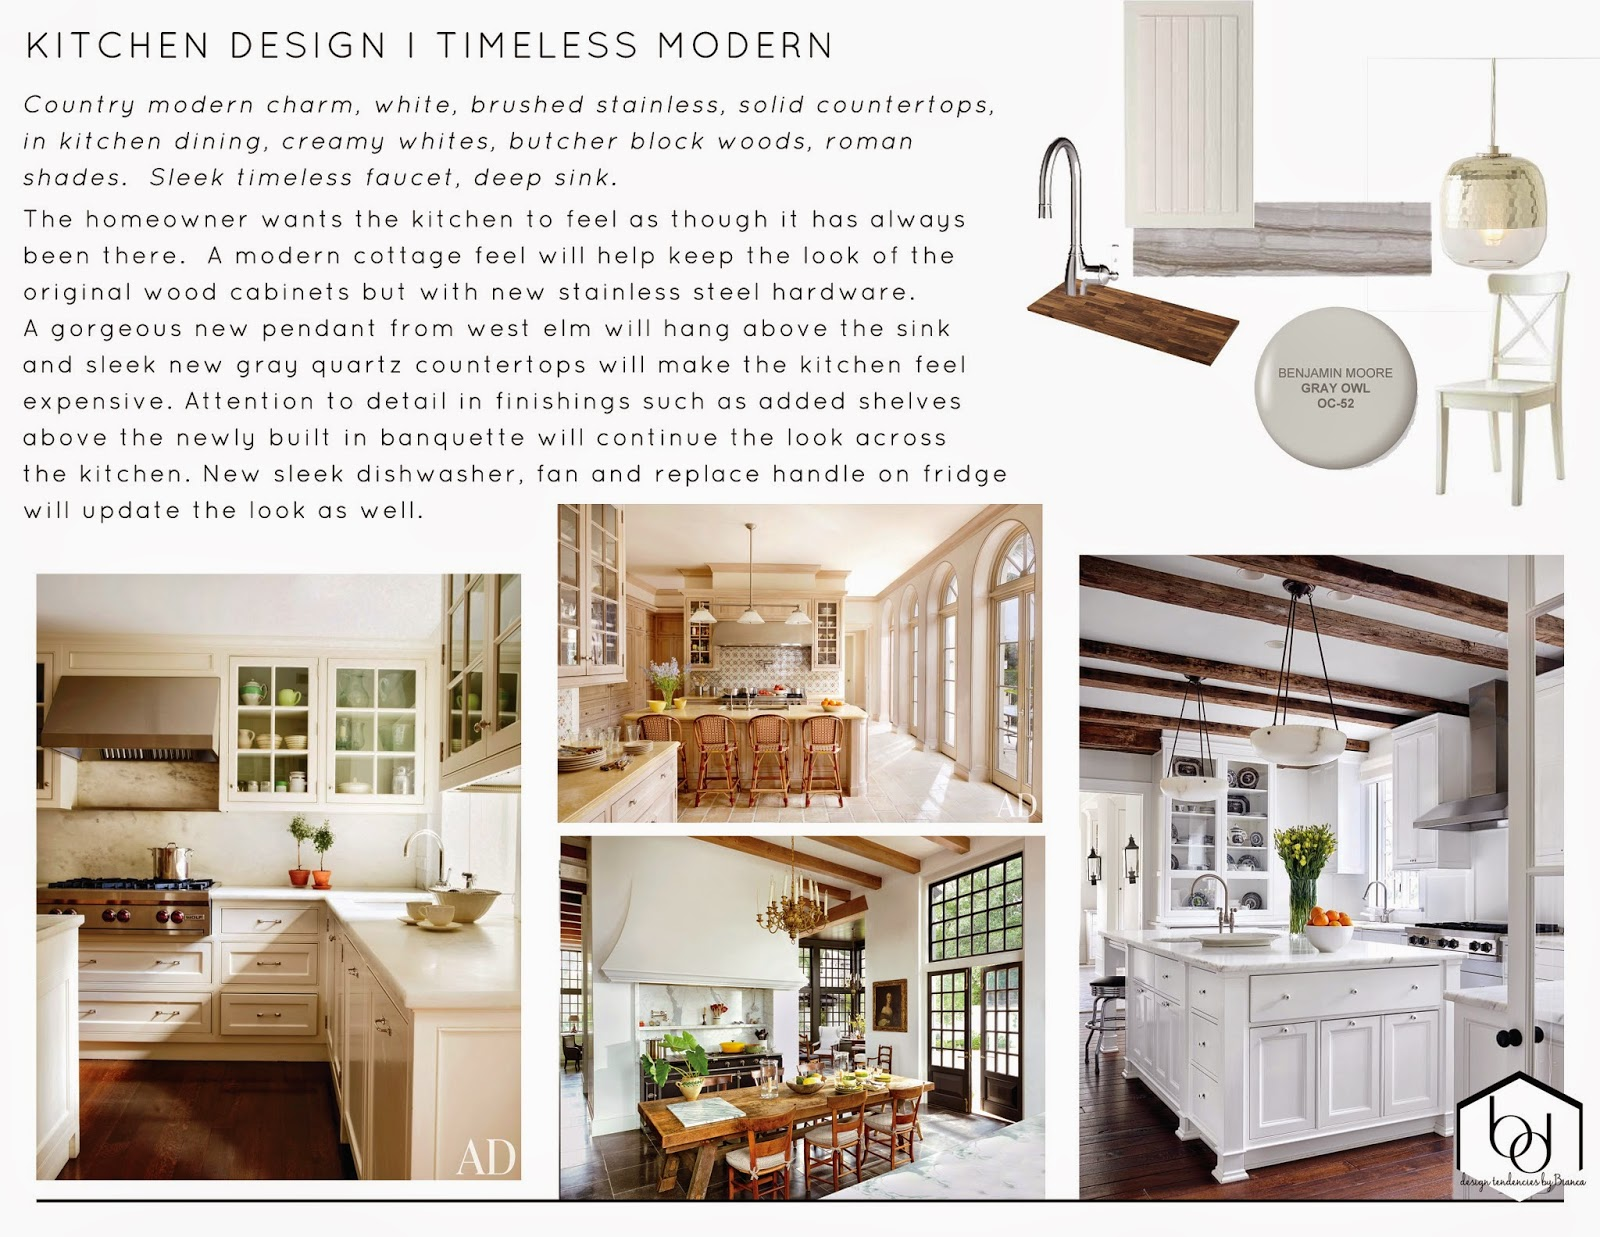 1u003eu003e Keywords: Vital For Any Design Scheme. Iu0027ve Omitted Words Of Feeling,  Because Iu0027m My Own Client And I Know Myself, But I Used Words That Would  Keep My ...